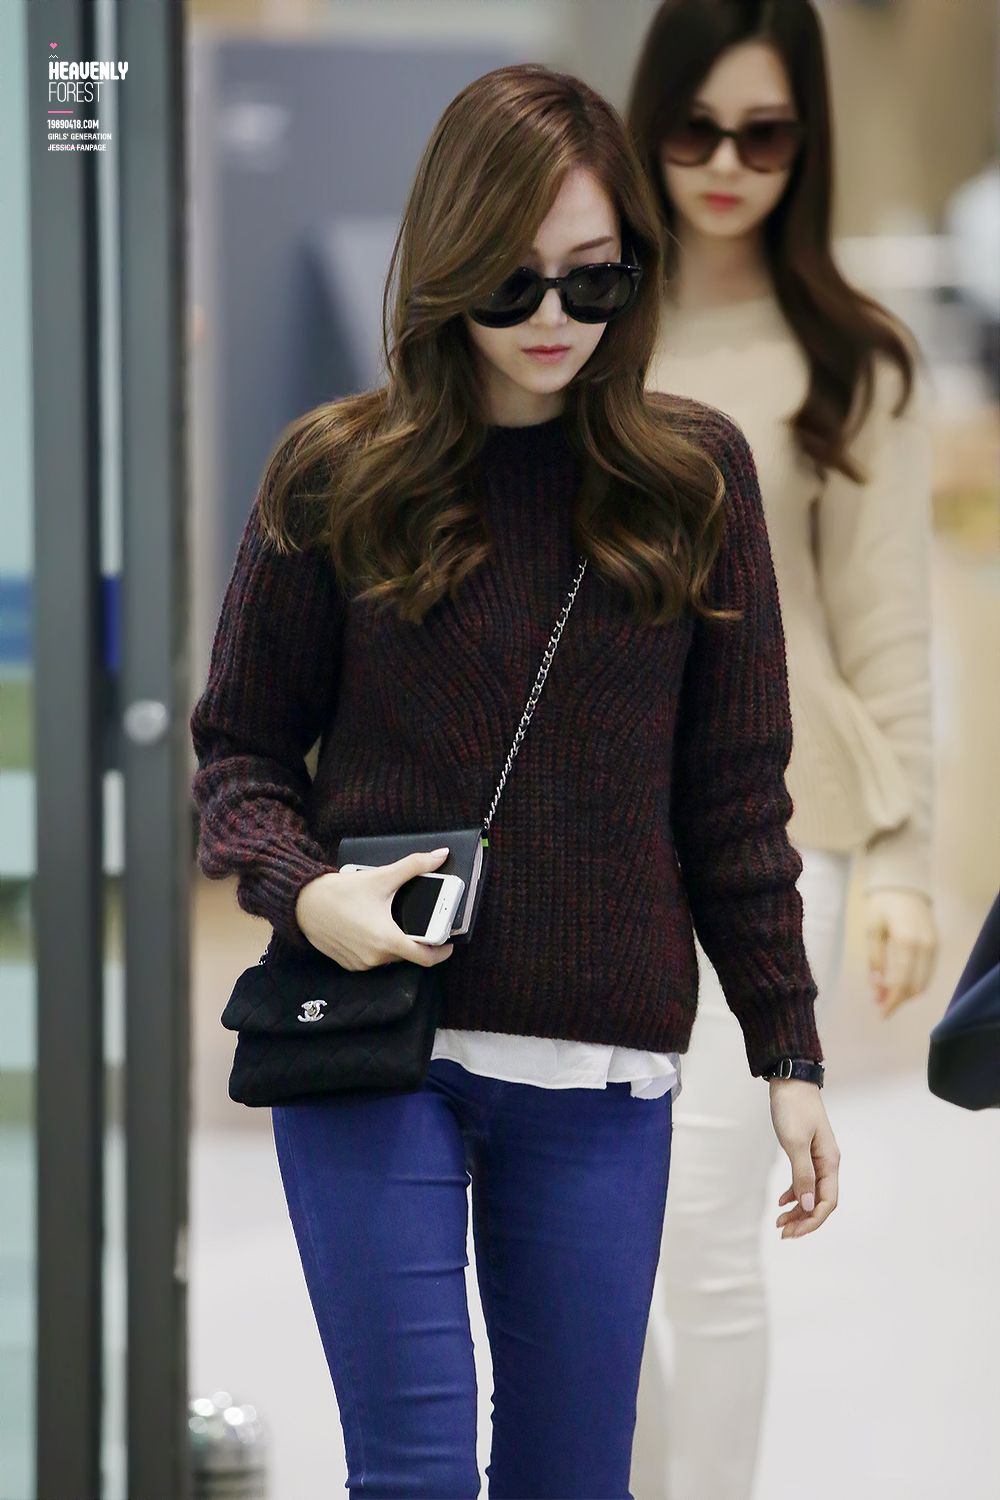 Sweater Chanel Clothes Horse Pinterest Snsd Jessica Jung And Airport Fashion